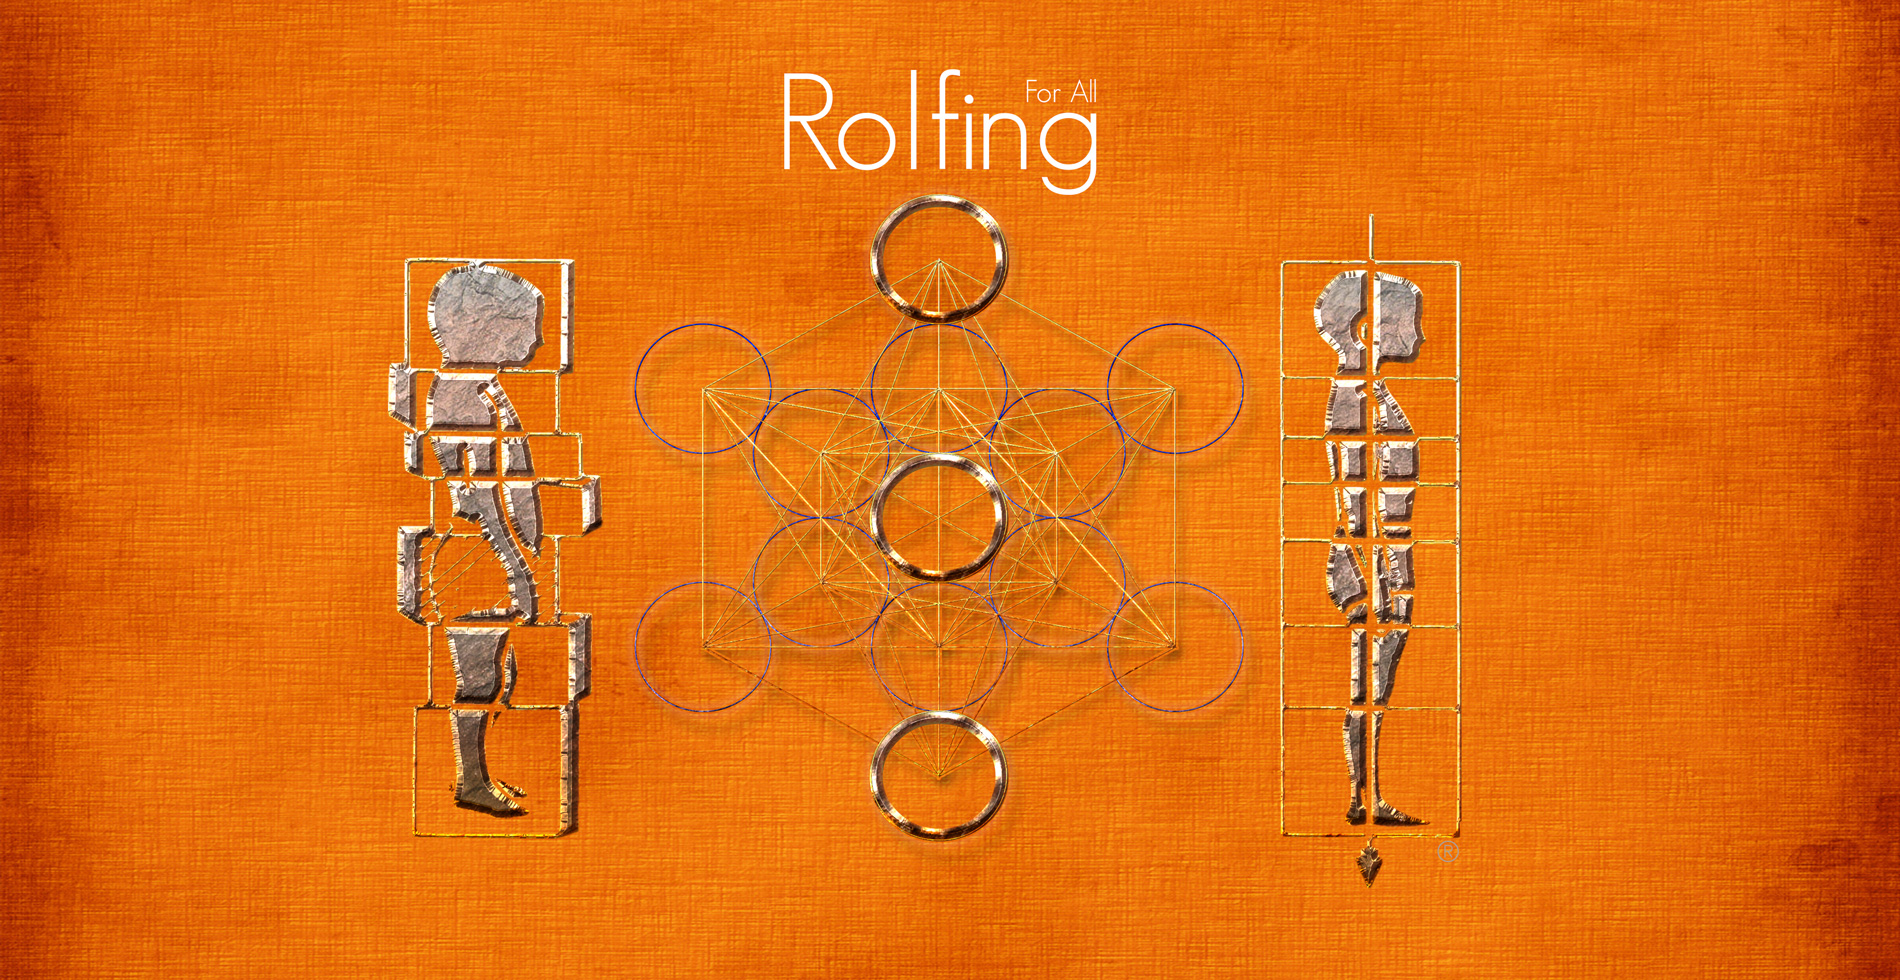 Rolfing for all.